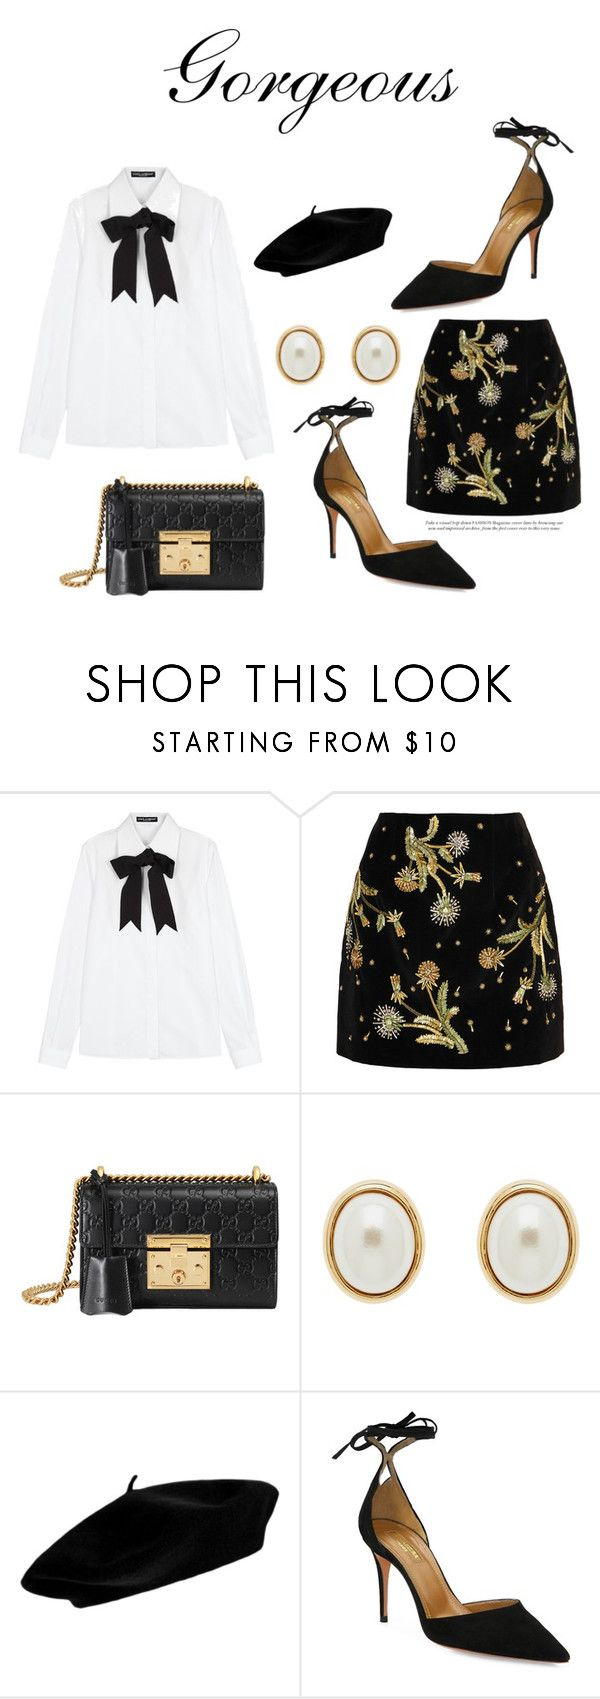 """638"" by meldiana ❤ liked on Polyvore featuring Dolce&Gabbana, Topshop Unique, Gucci, Finesse and Aquazzura"